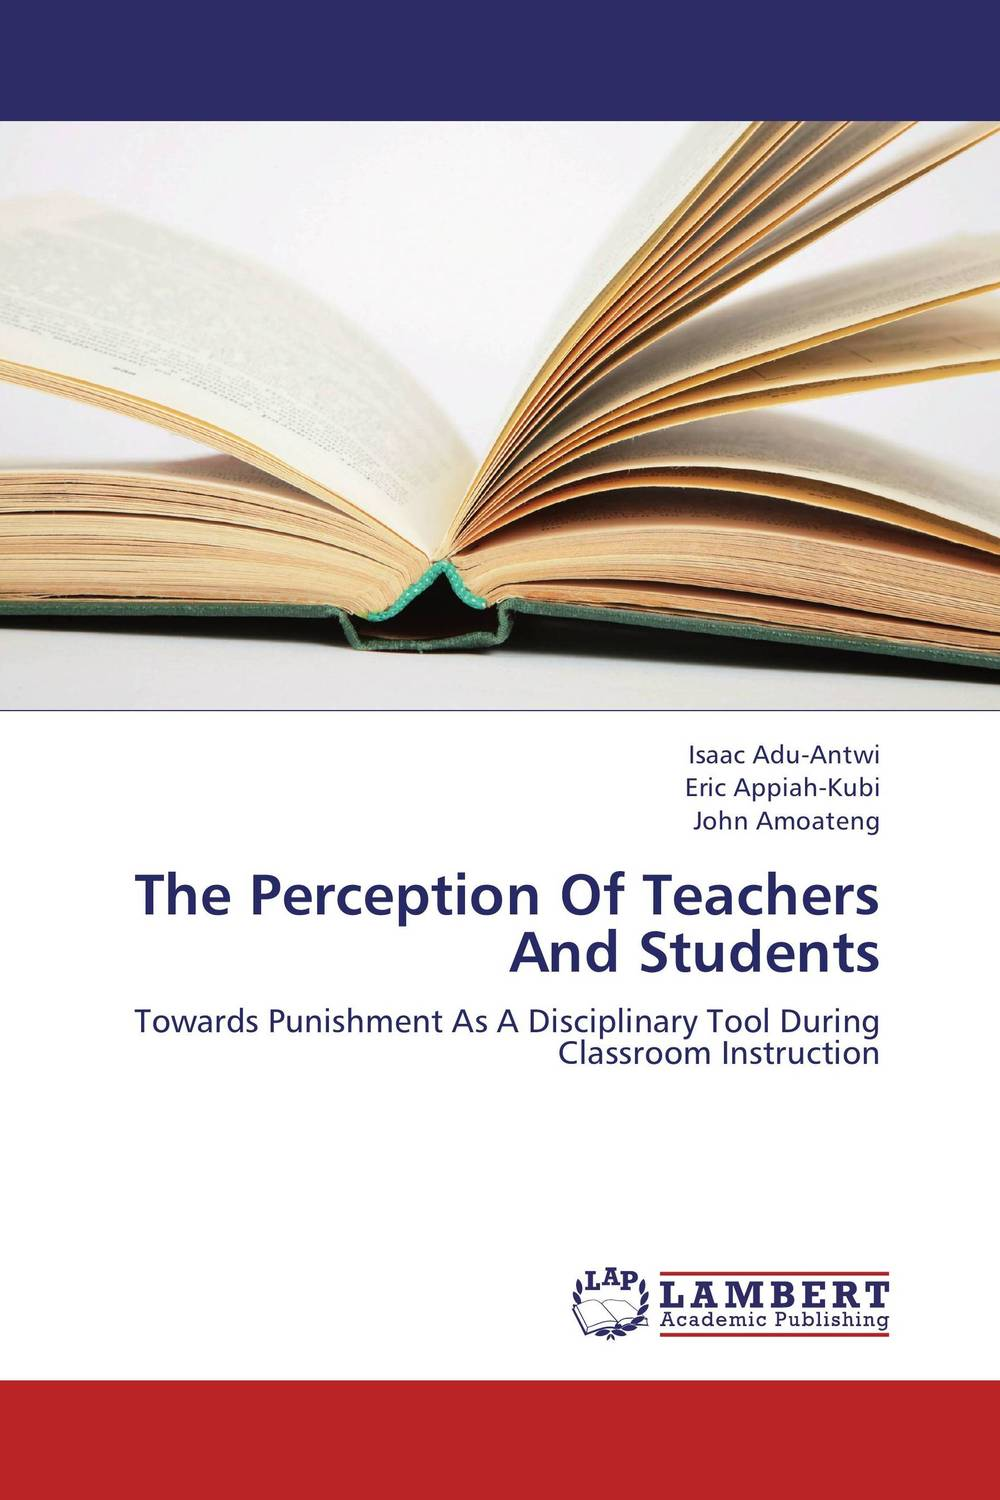 The Perception Of Teachers And Students